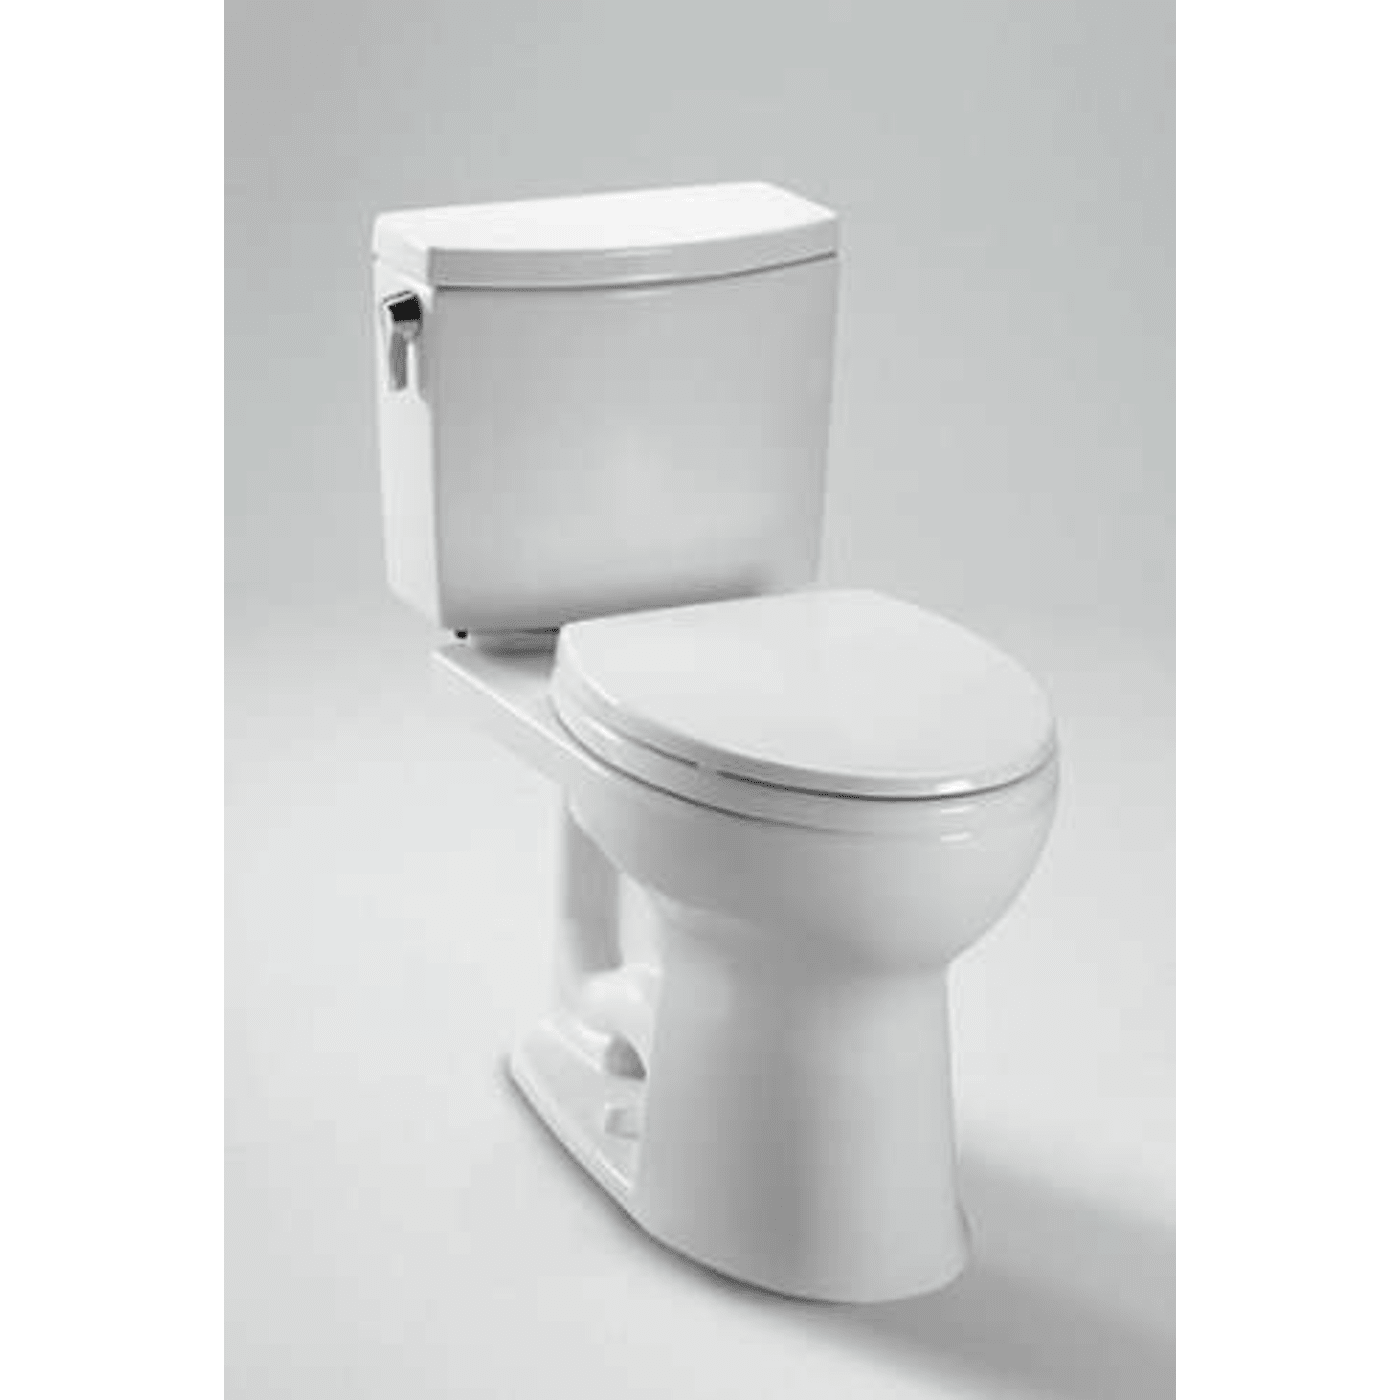 Toto Drake Toilet Bowl C454CUFG#01 Cotton White - Goedekers.com